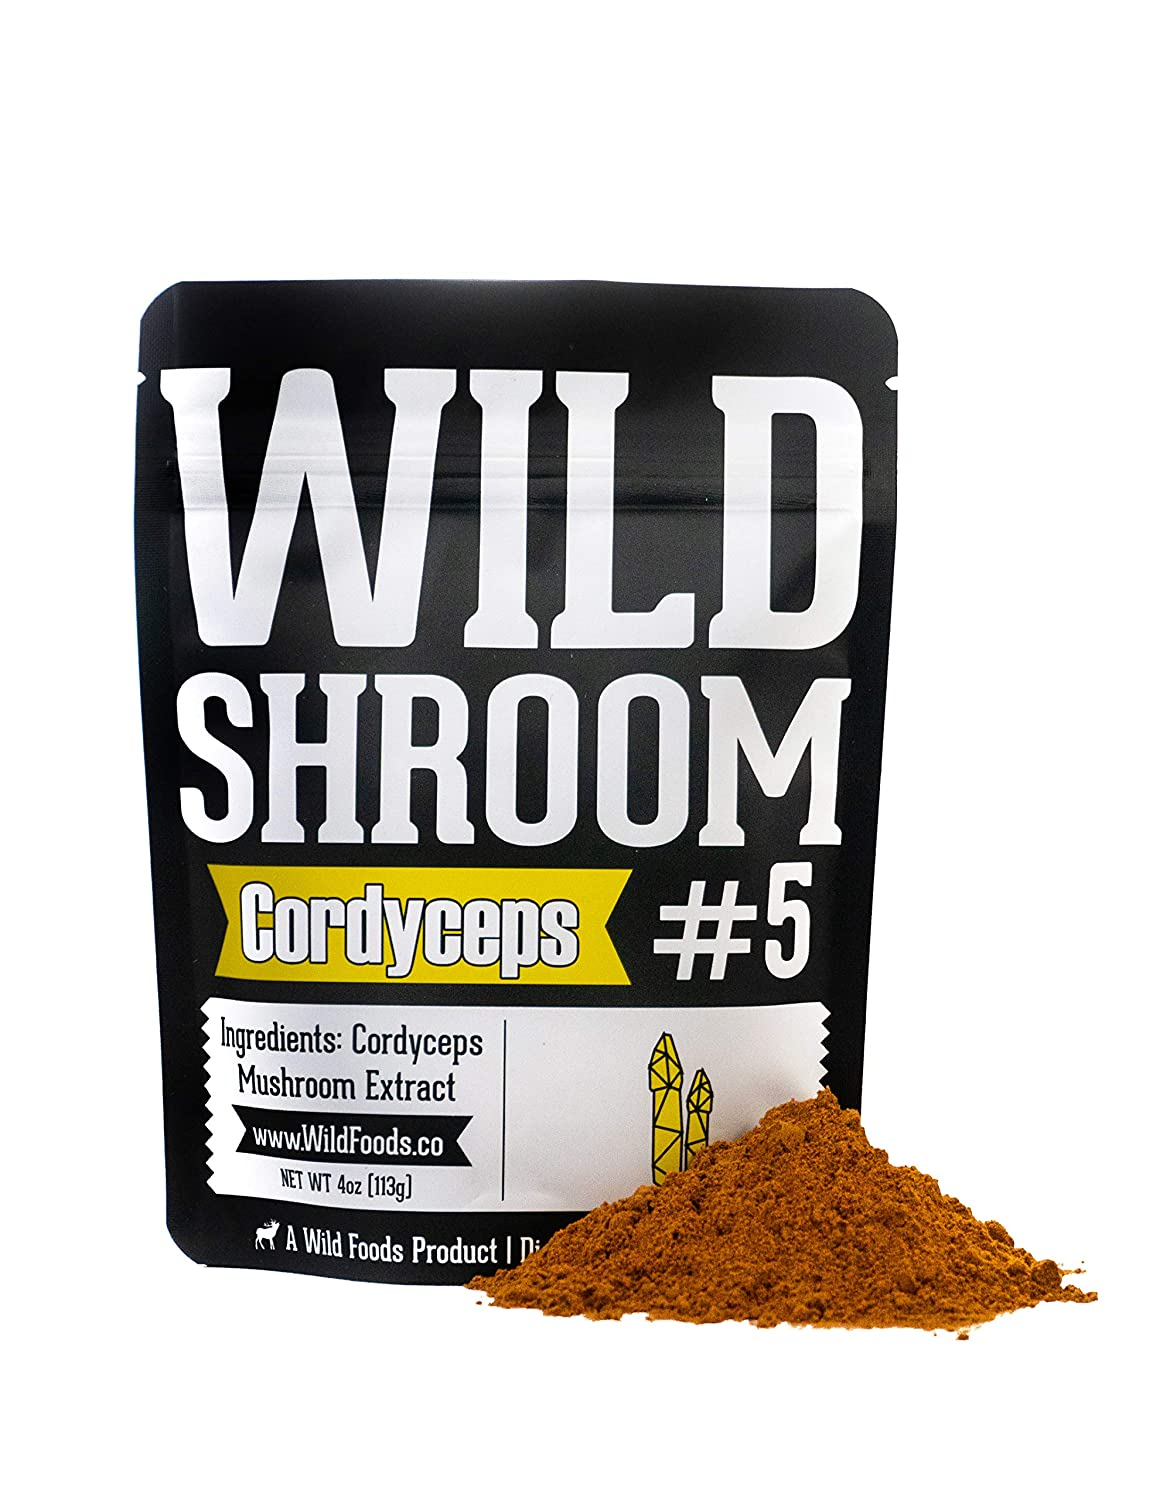 Cordyceps Mushroom Extract Powder 10 1 by Wild Foods Cultivated Mycelium, Triple Hot Water Extract Adaptogenic Nootropic Herb for Focus, Memory and Health Two 4 Ounce